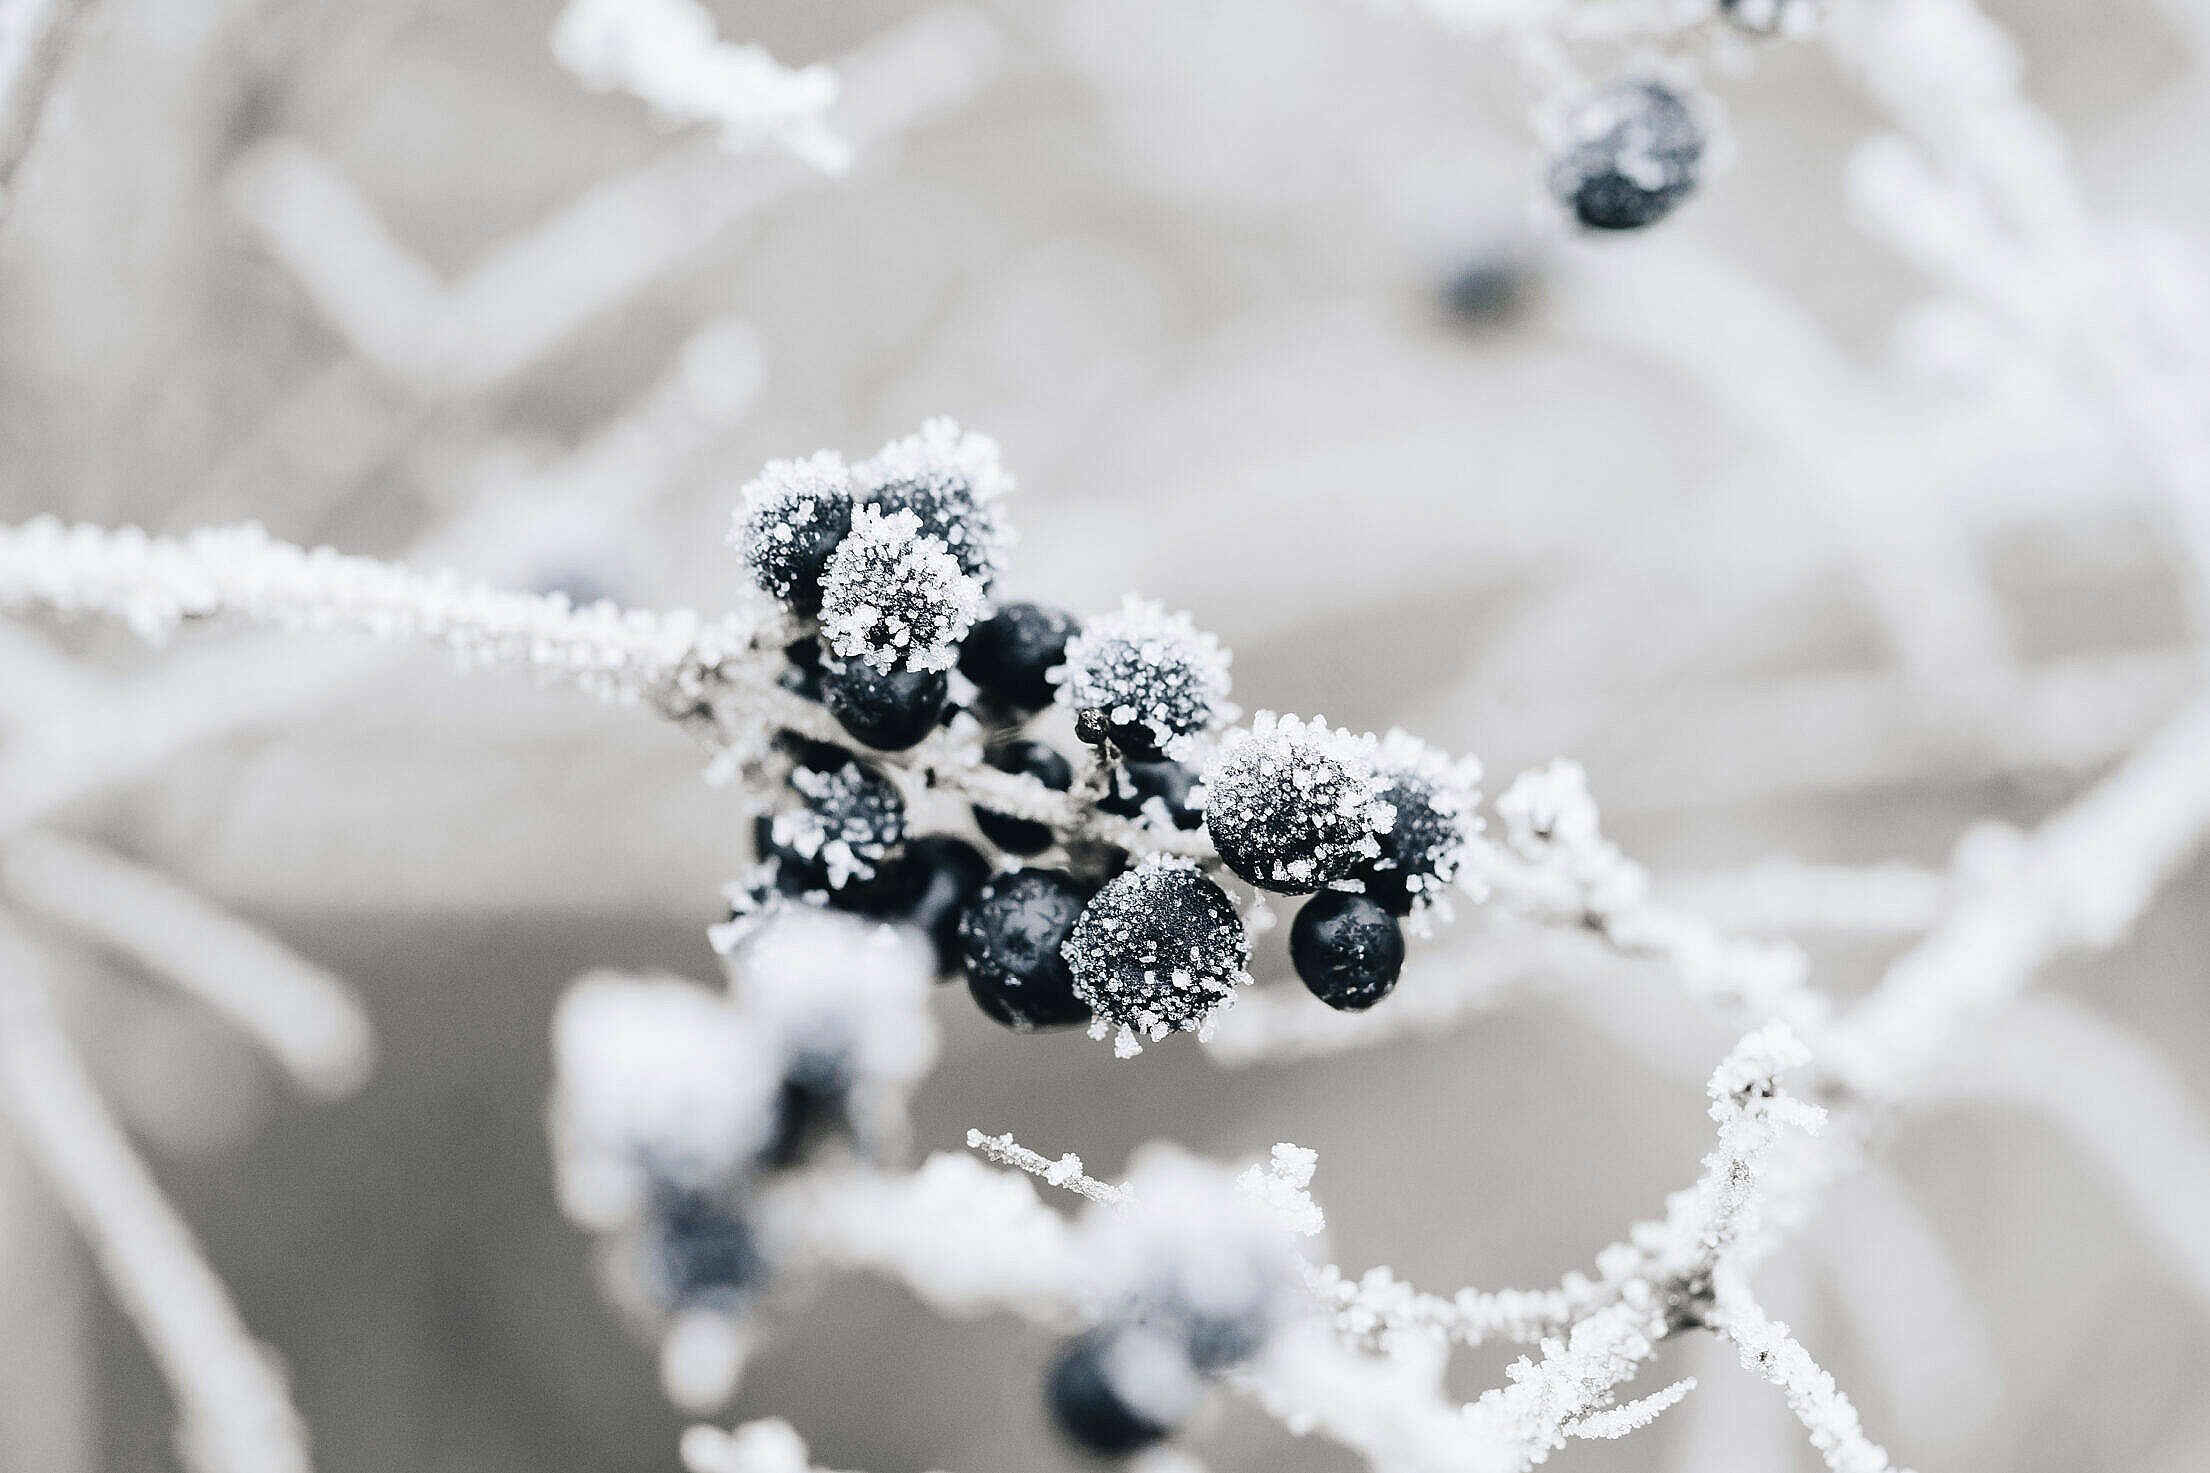 Frosted Blueberries Free Stock Photo